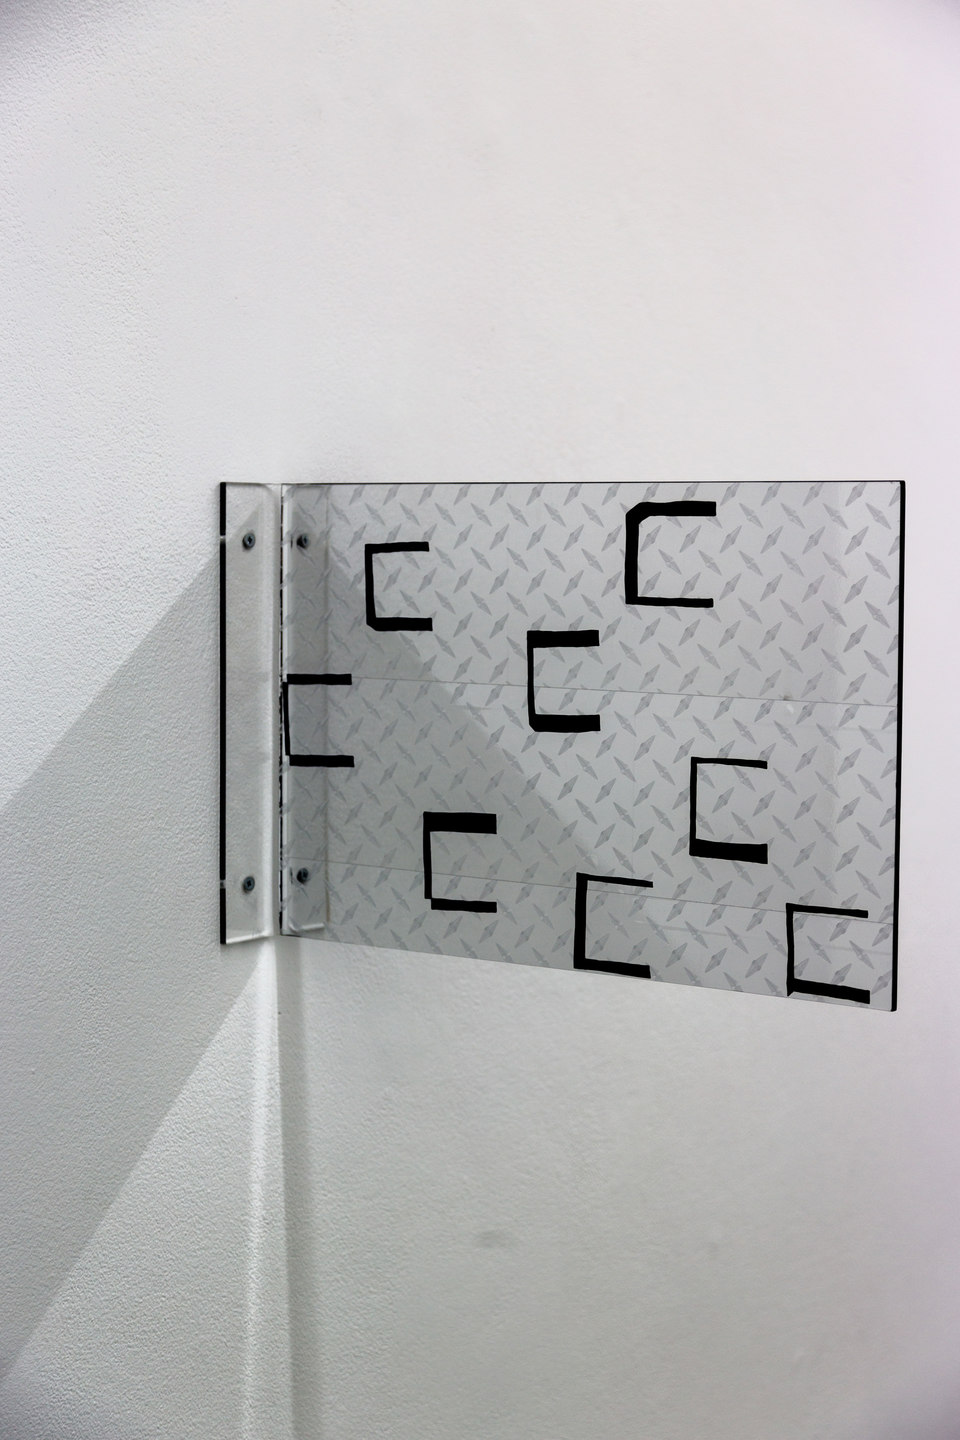 Marte Eknæs, Reboot Horizon, 'Alternative Solutions Diamond Plate', 2013, plexiglass, custom vinyl sticker, diamond plate decal, Cell Project Space